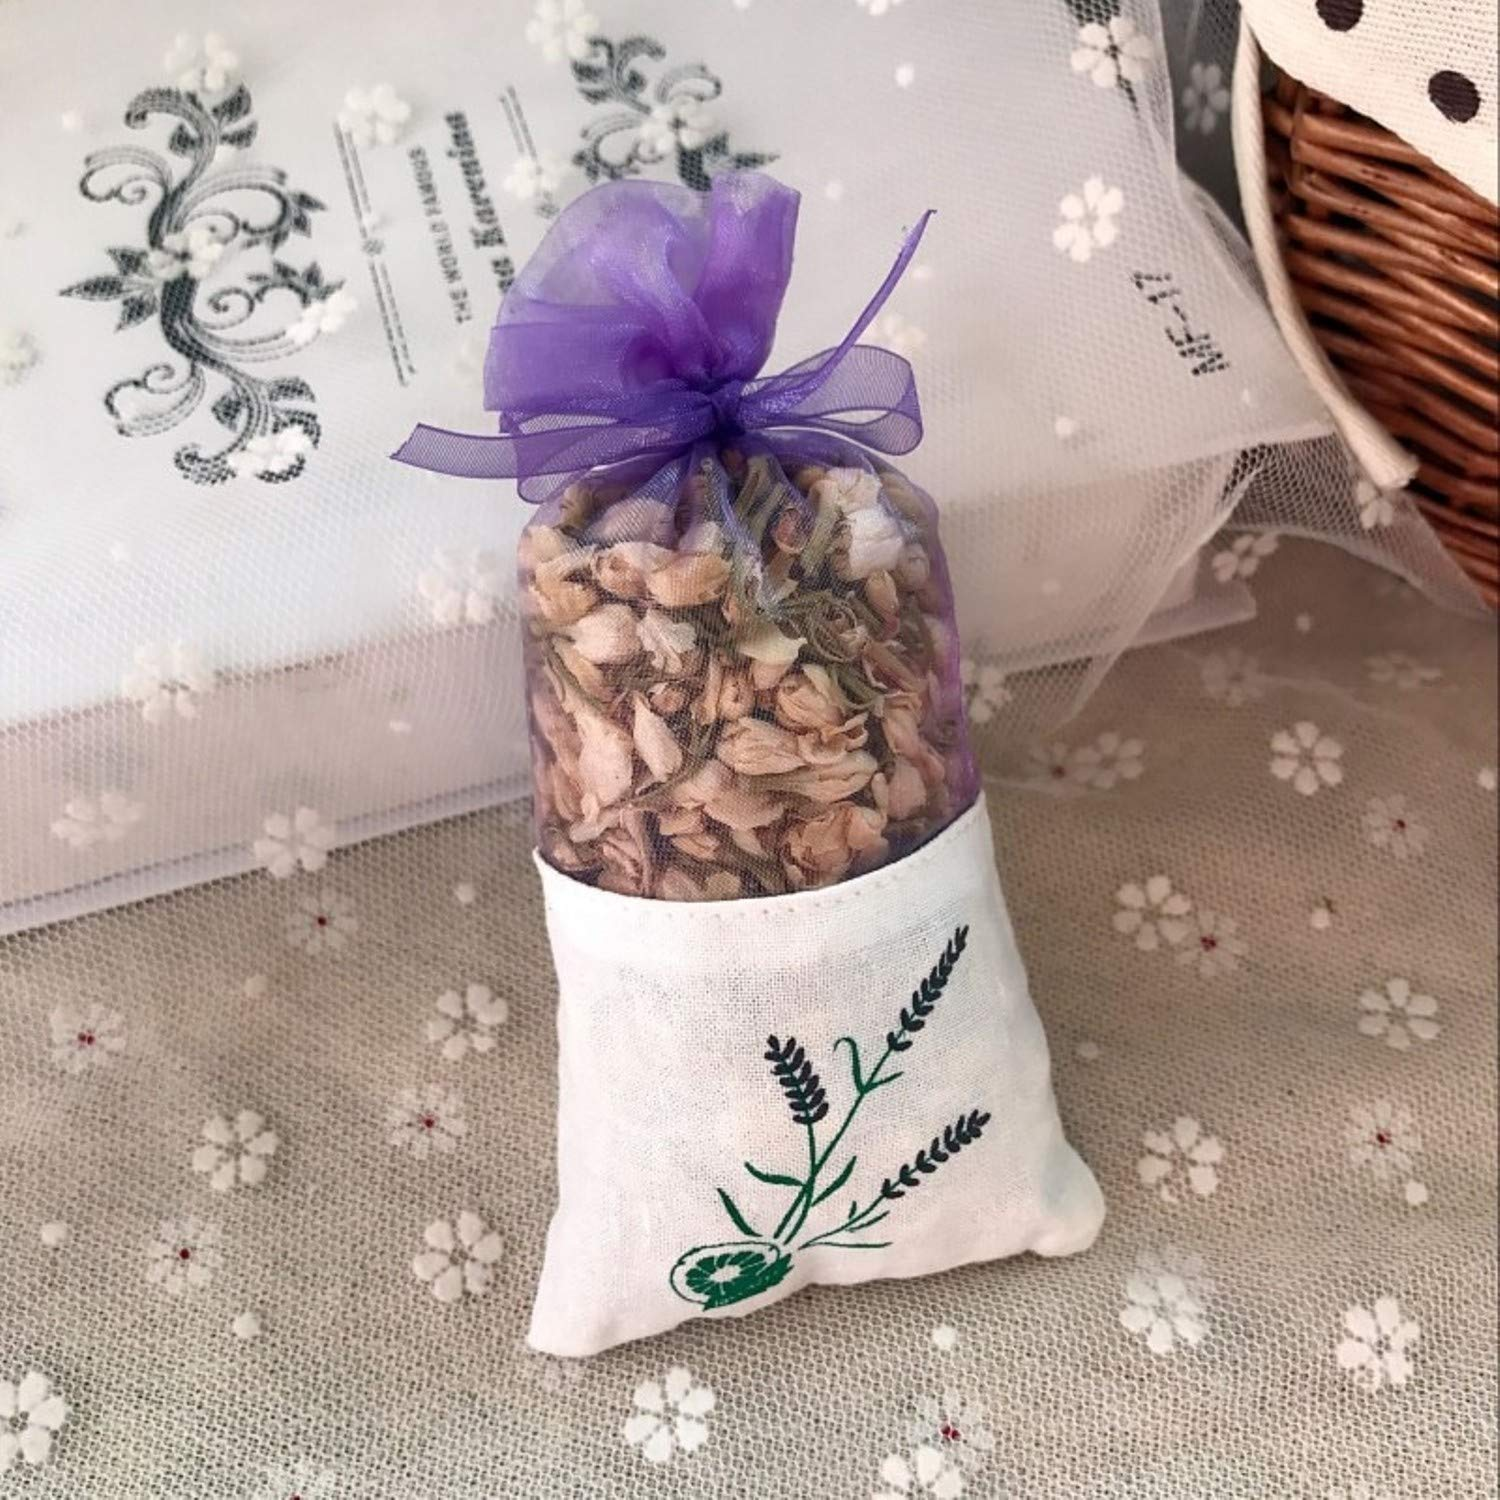 Dried Flowers - Natural Rose Flowers Jasmine Lavender Bud Dried Flower Sachet Bag Aromatherapy Wardrobe Desiccant Sachet car Room Air Refreshing (Jasmine)